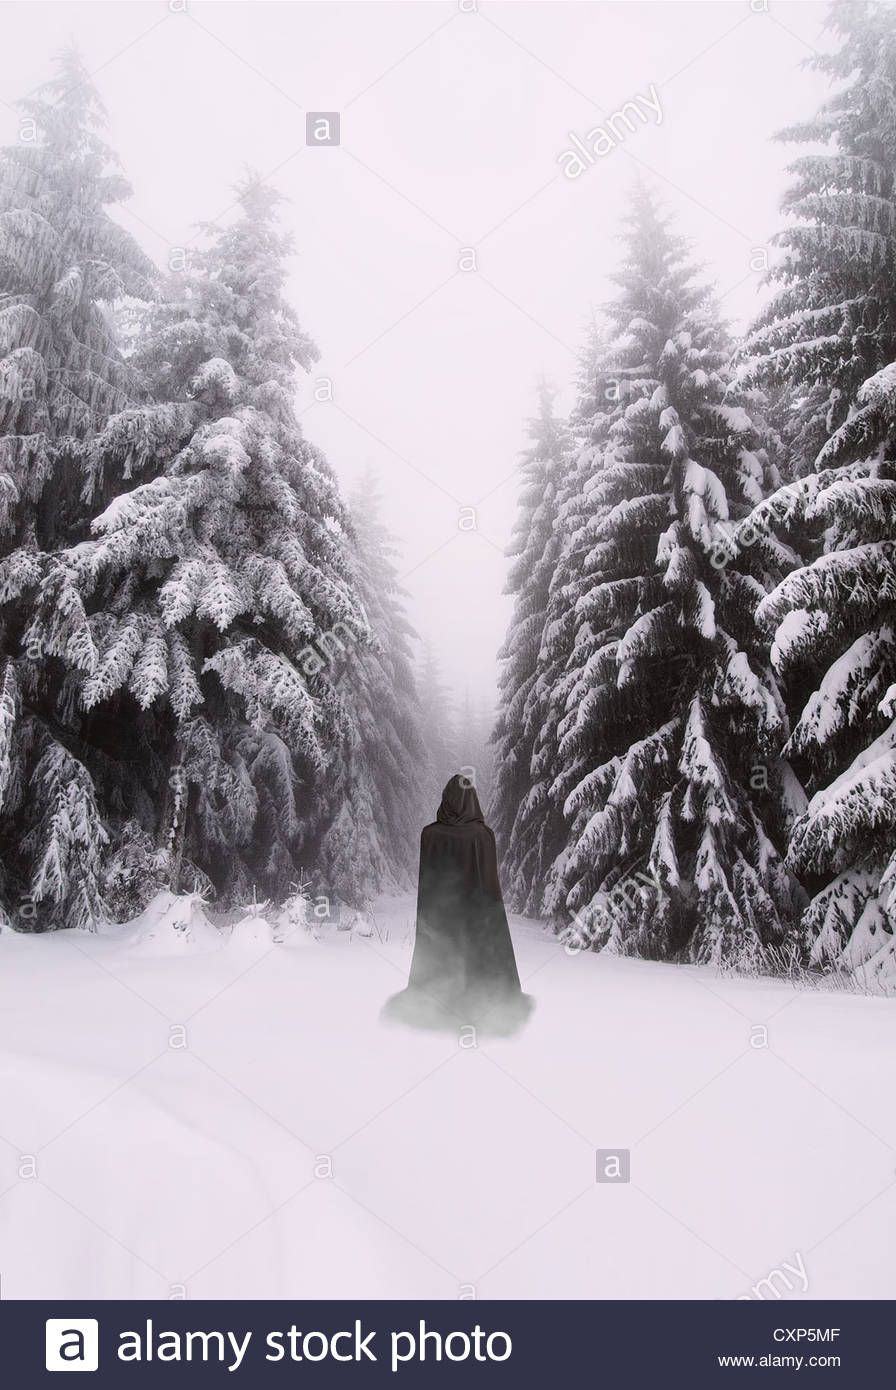 Grim reaper walking in the woods on a snowy day | Book Cover